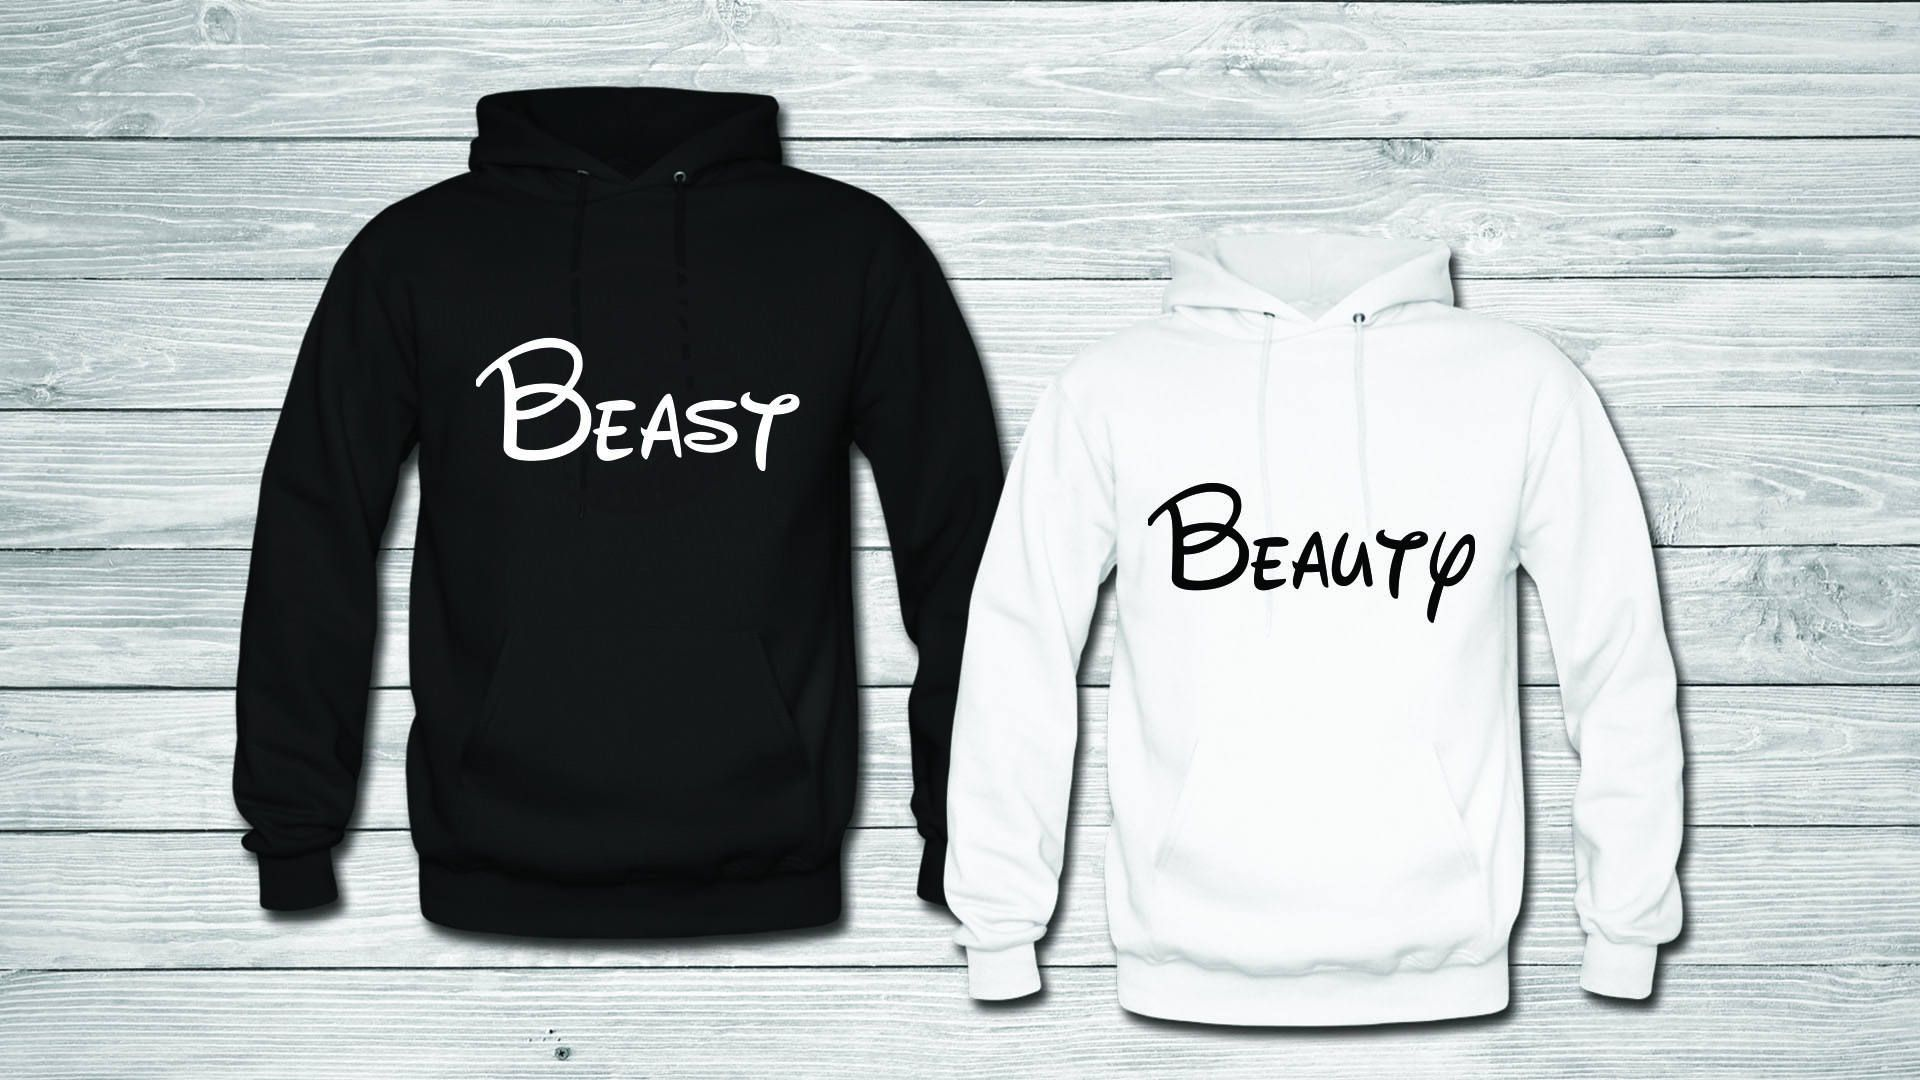 2d3ac6587a BEAST AND BEAUTY Couples hoodie / Couples hoodies / Couple hoodies by  boutiqueRus on Etsy